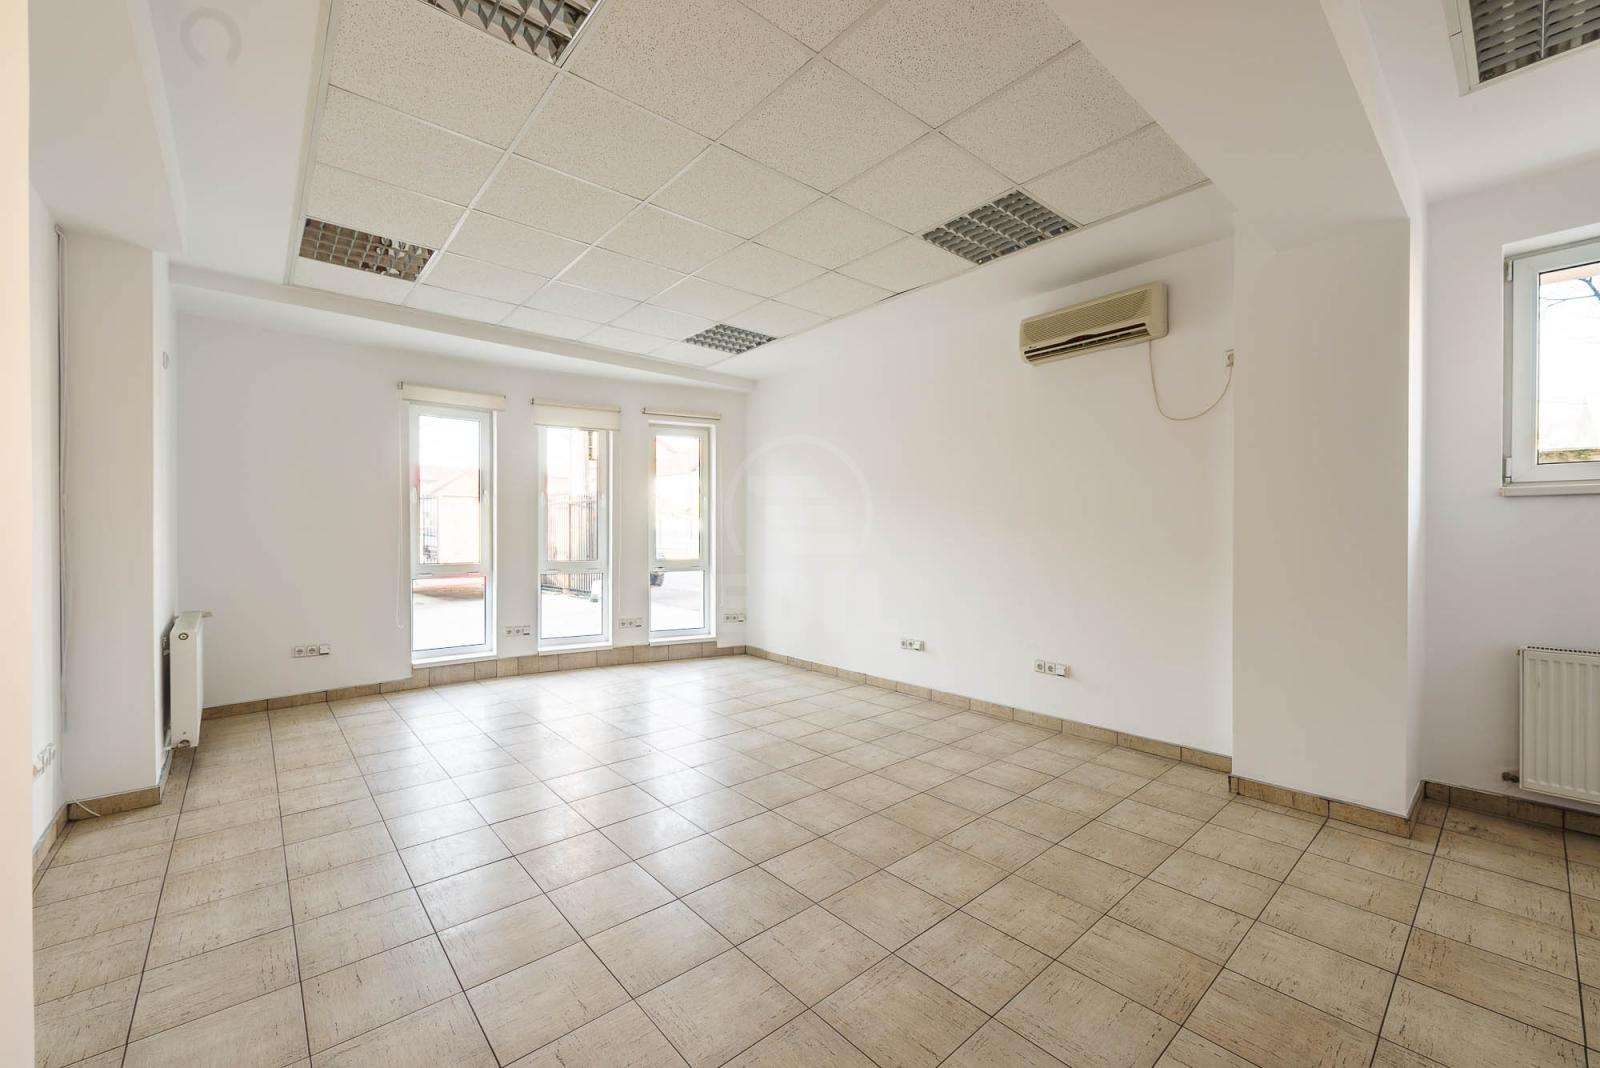 Office for sale 17 rooms, BICJ272190-13